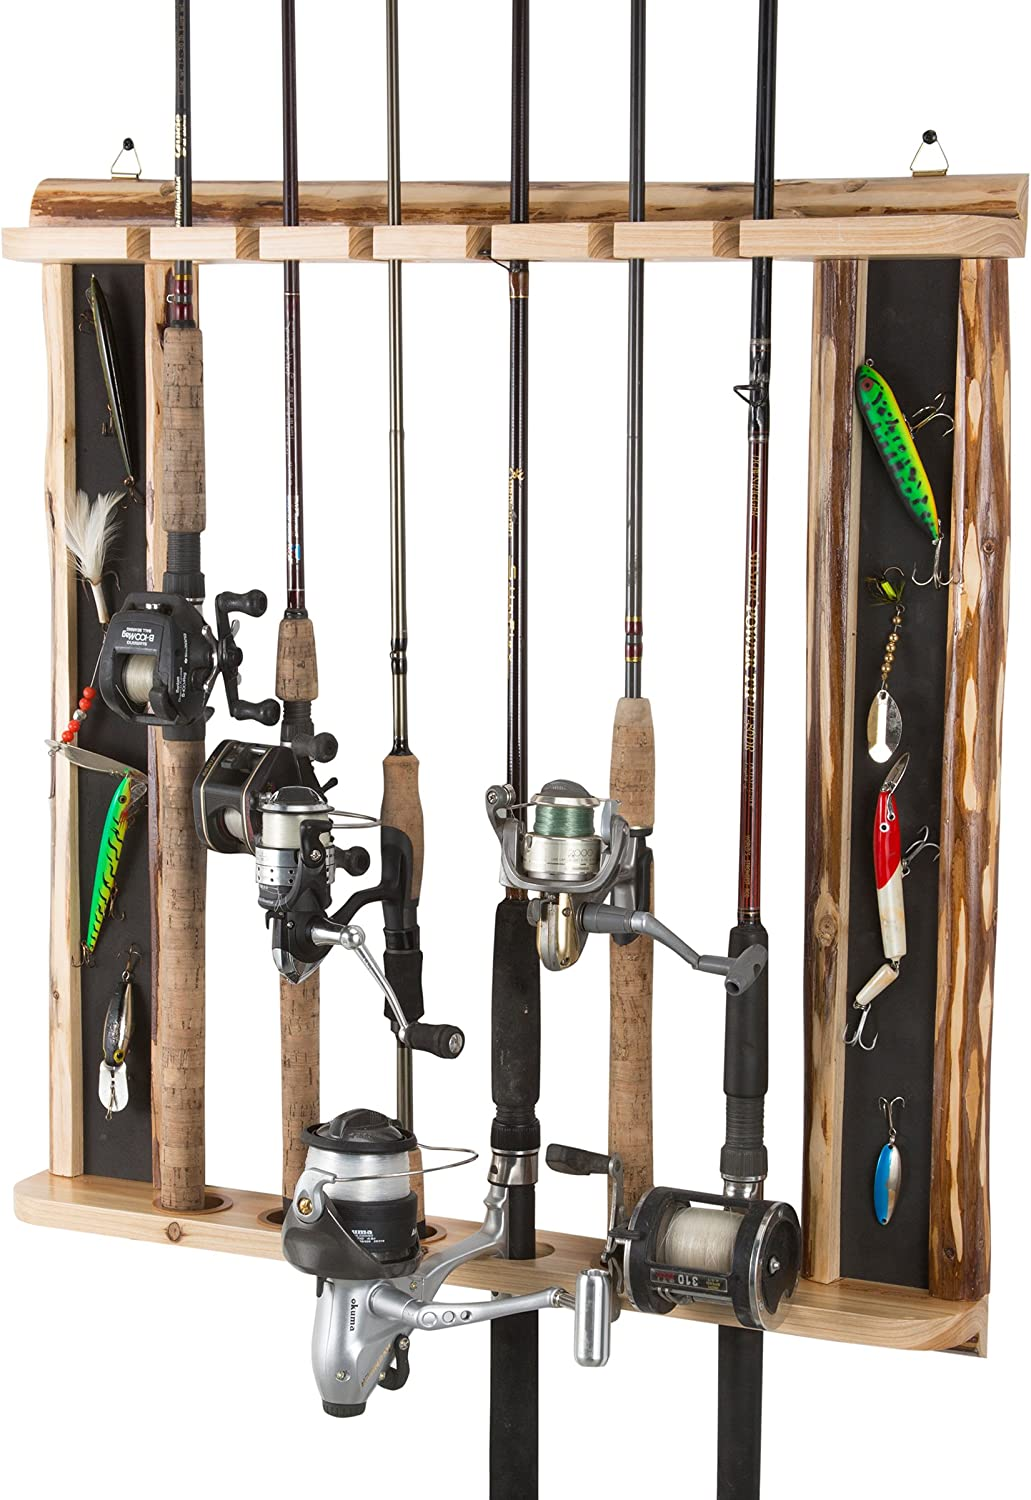 MyGift 6-Rod Torched Wood Vertical Fishing Pole Wall Storage Rack